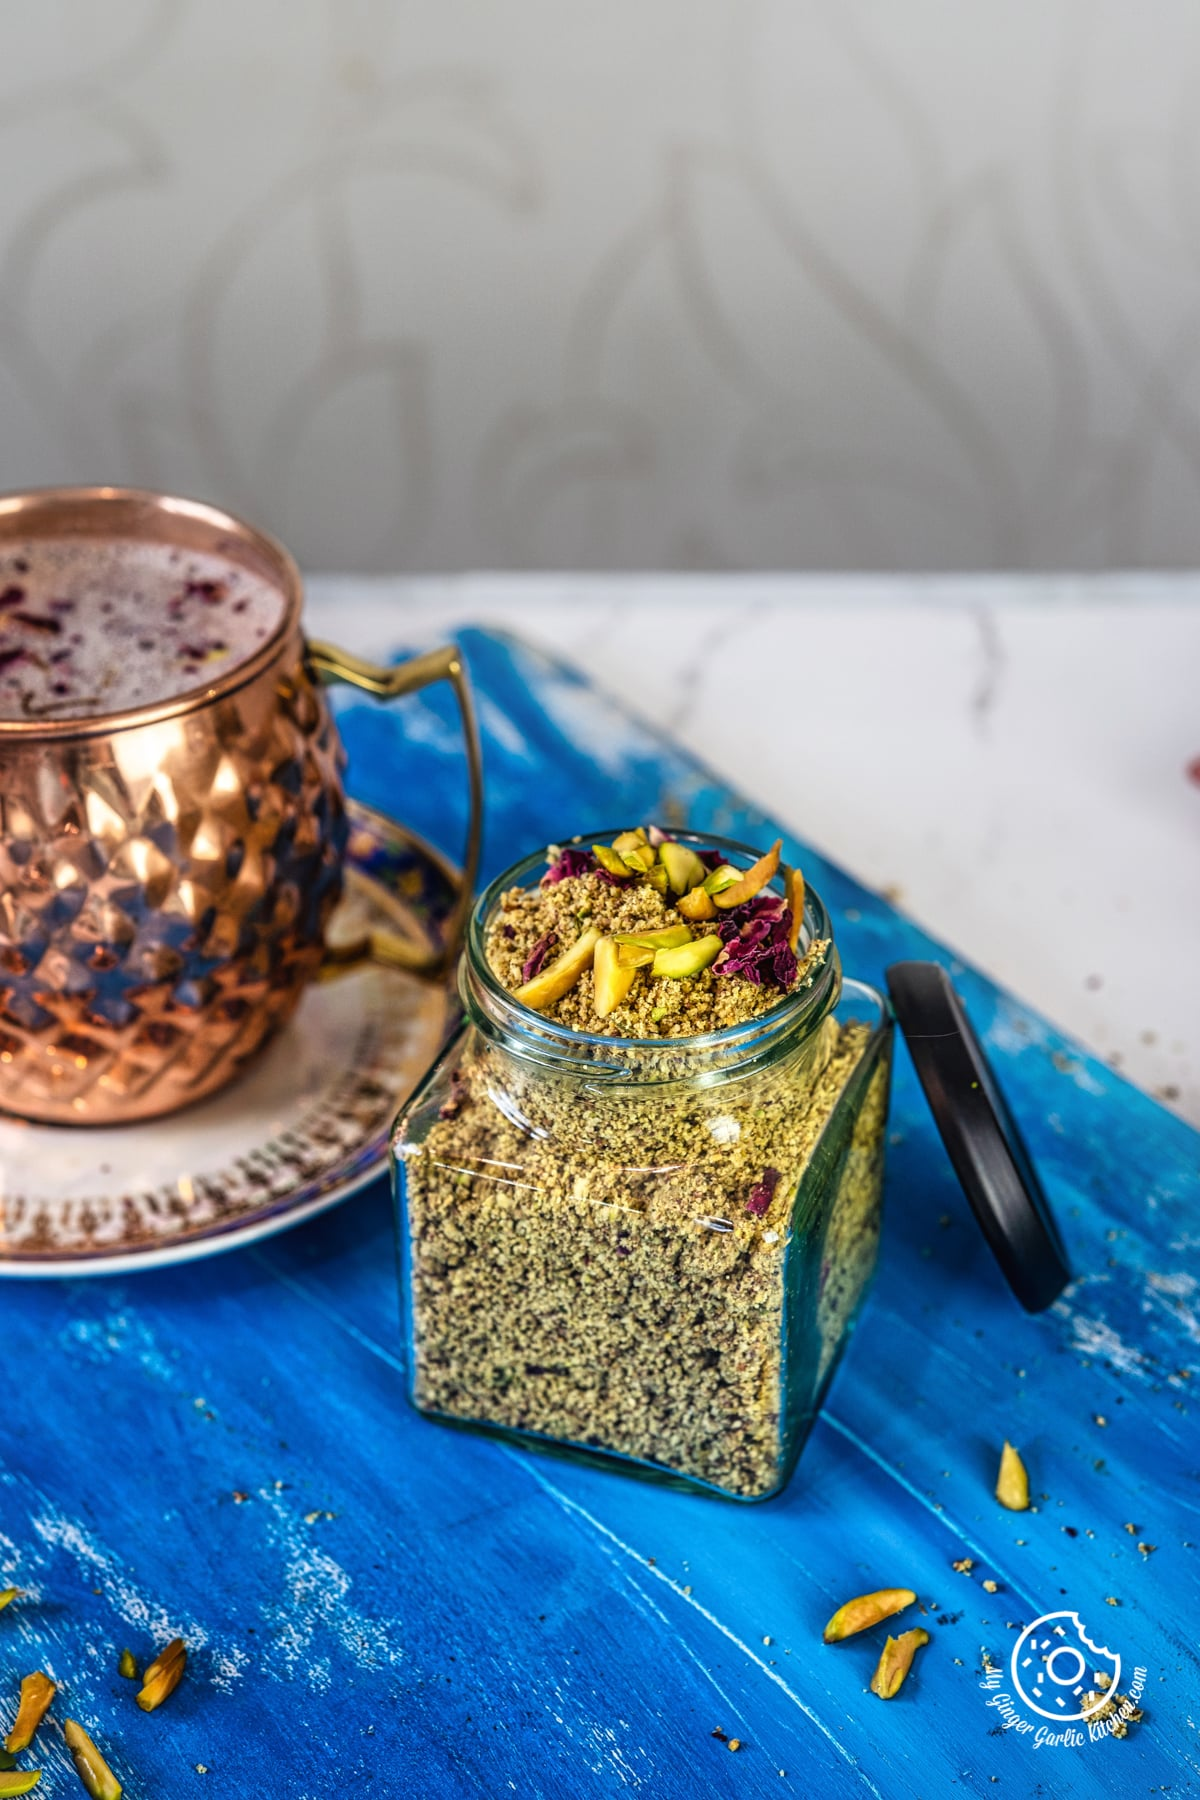 thandai powder in a transparent jar over blue wooden board and a copper mug on the side